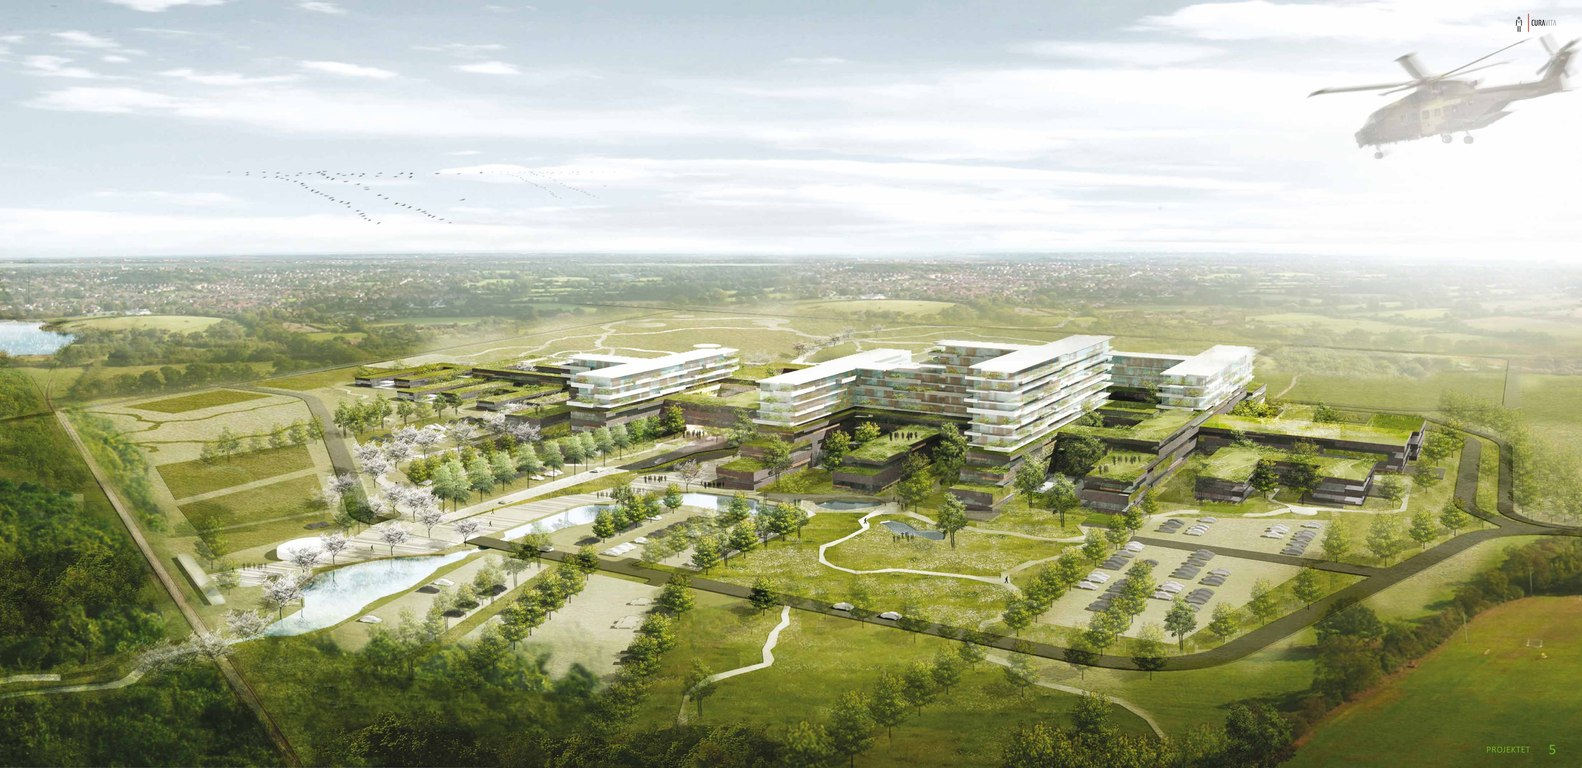 Risk Analysis with BIM at the New Hospital in the West - Gødstrup (DNV)